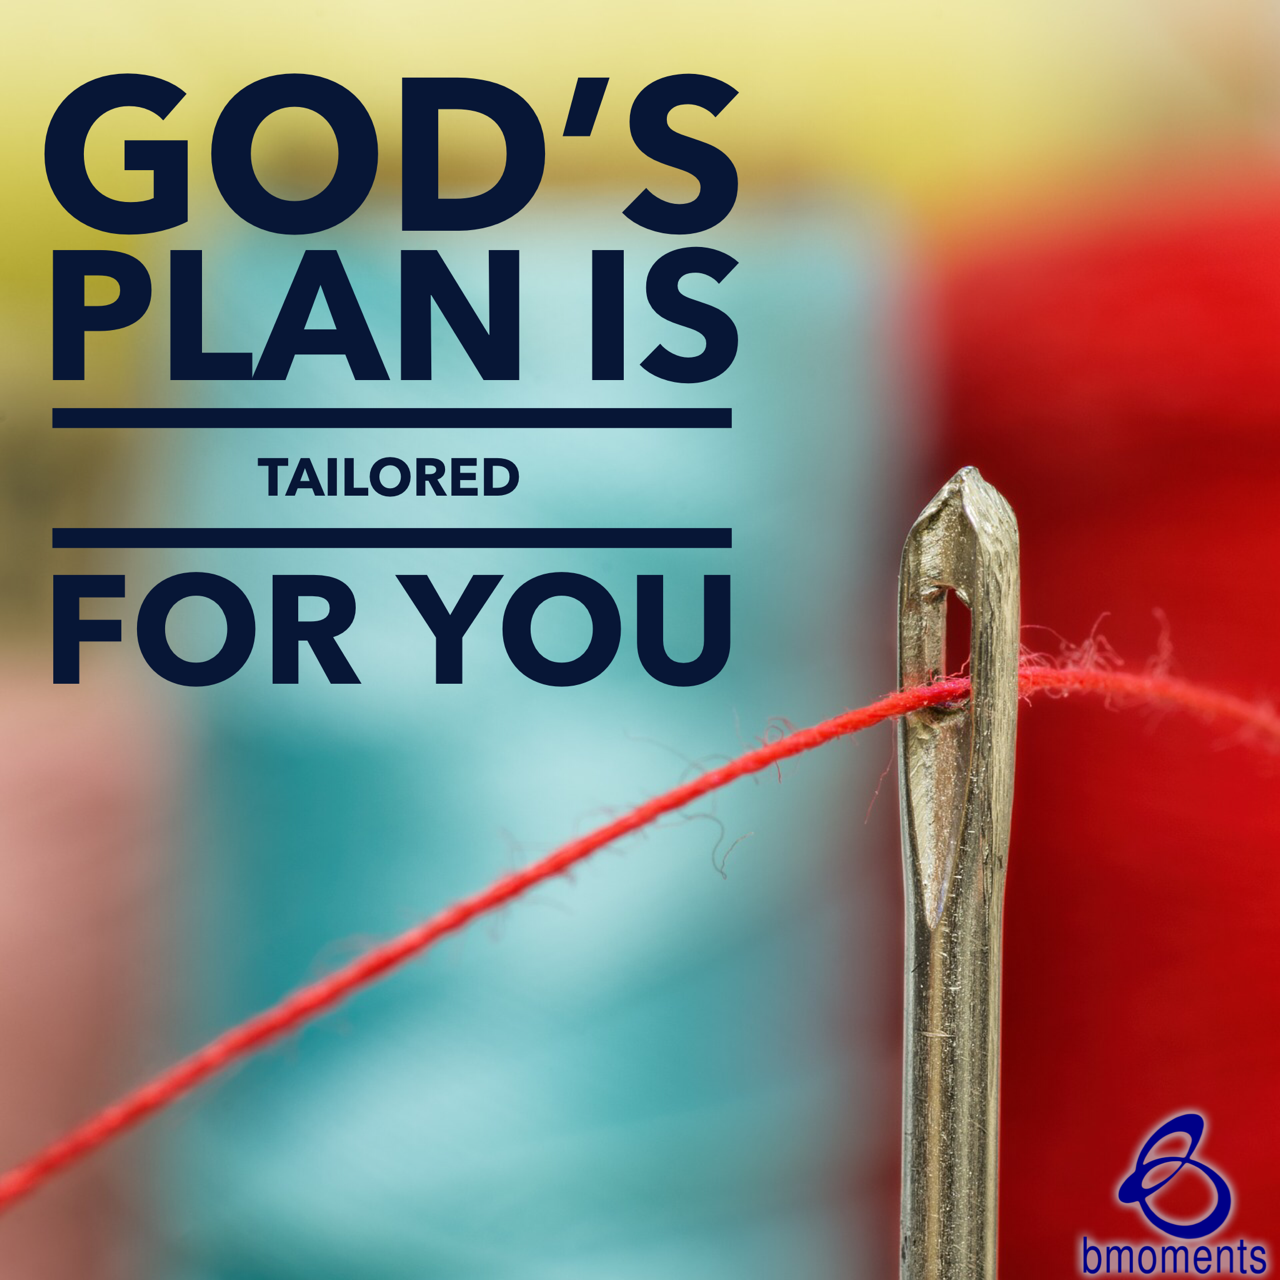 God Has Tailored a Plan Just for You